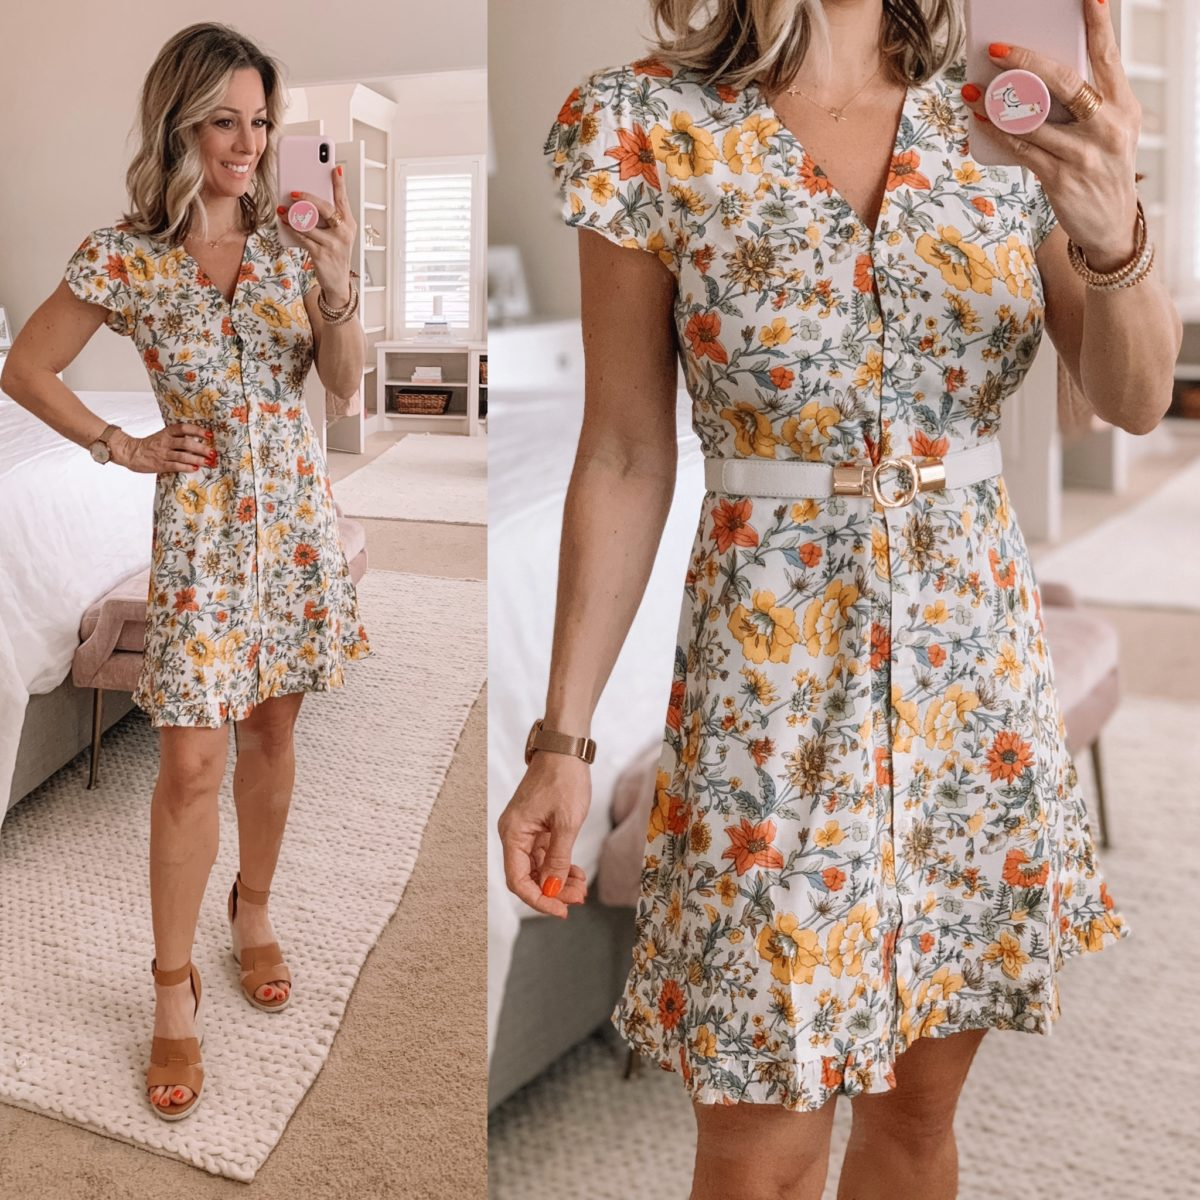 Floral Dress, Wedges, White and Gold Belt